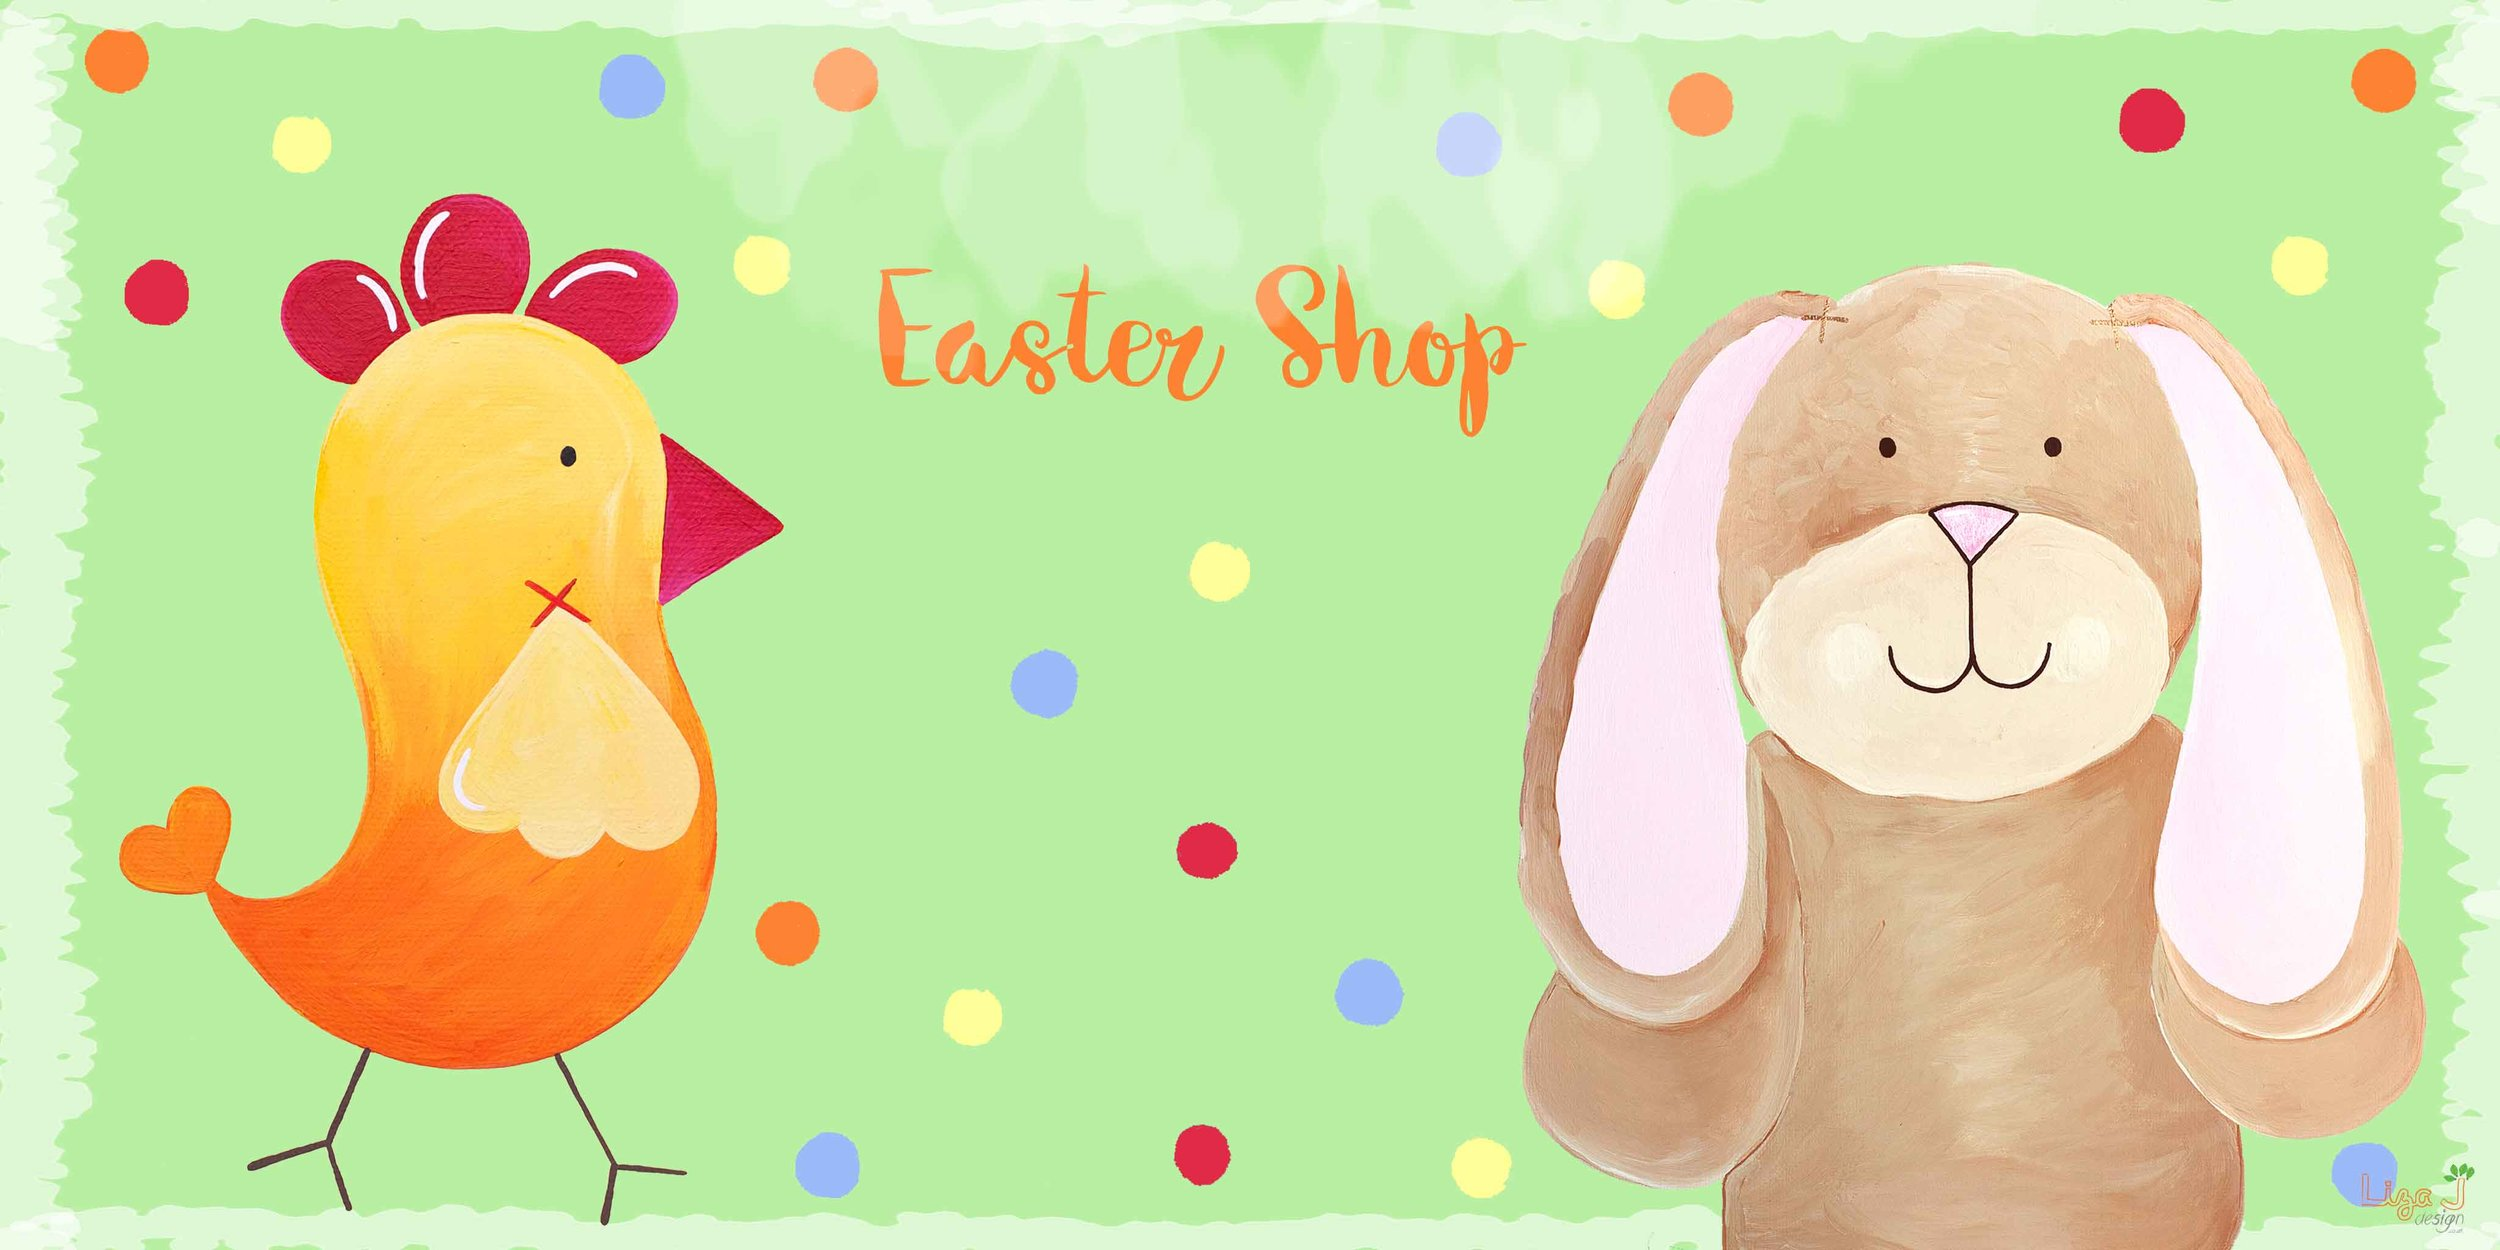 Easter Shop Open - From Easter Bunnies to Chicks explore our characters in the Easter range, perfect for a baby's first Easter, Easter gifts and family members.